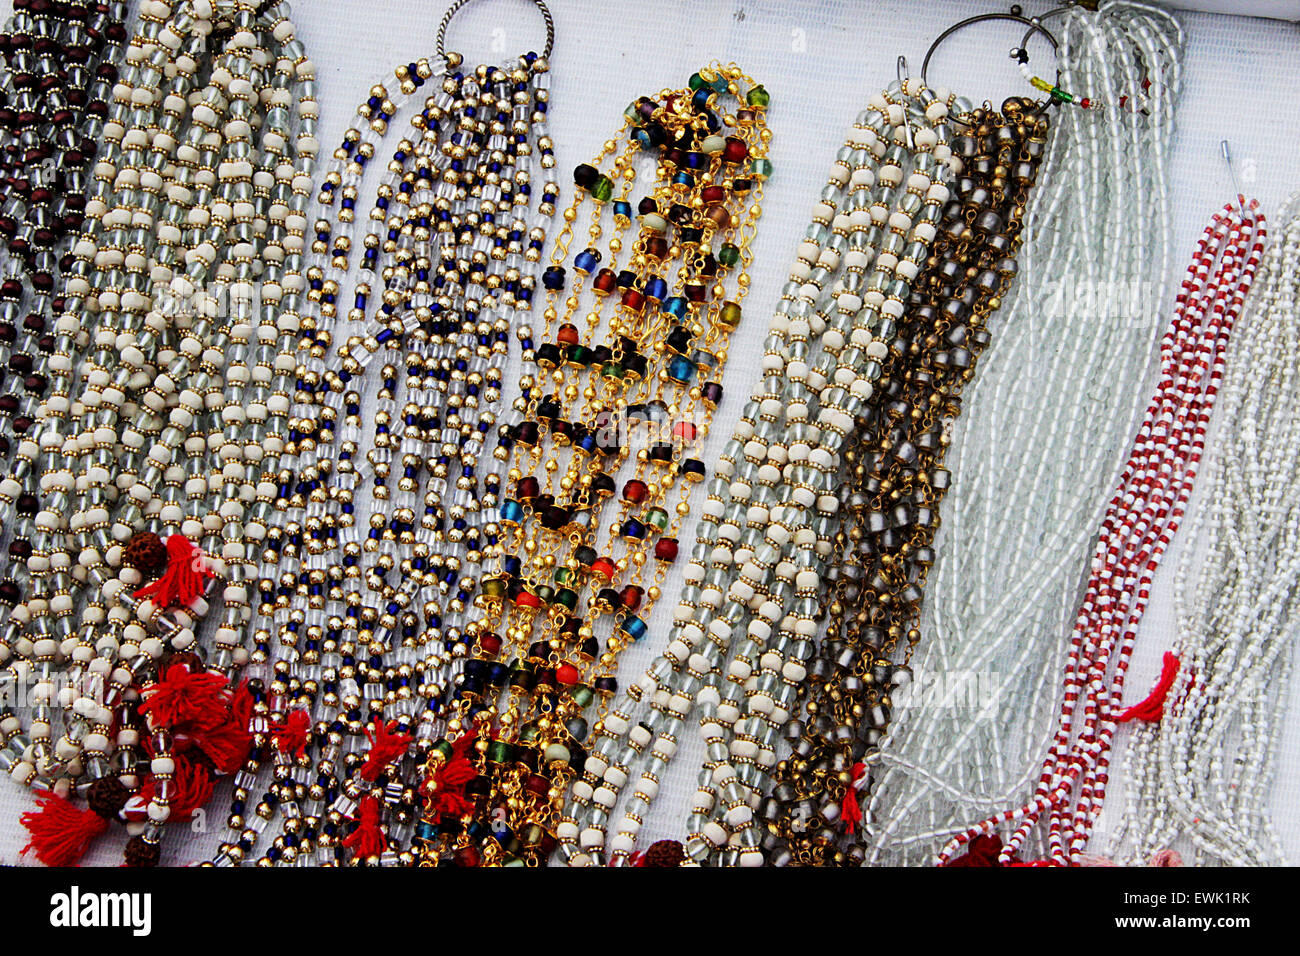 Display of variety of colorful, white and transparent beaded necklaces - Stock Image